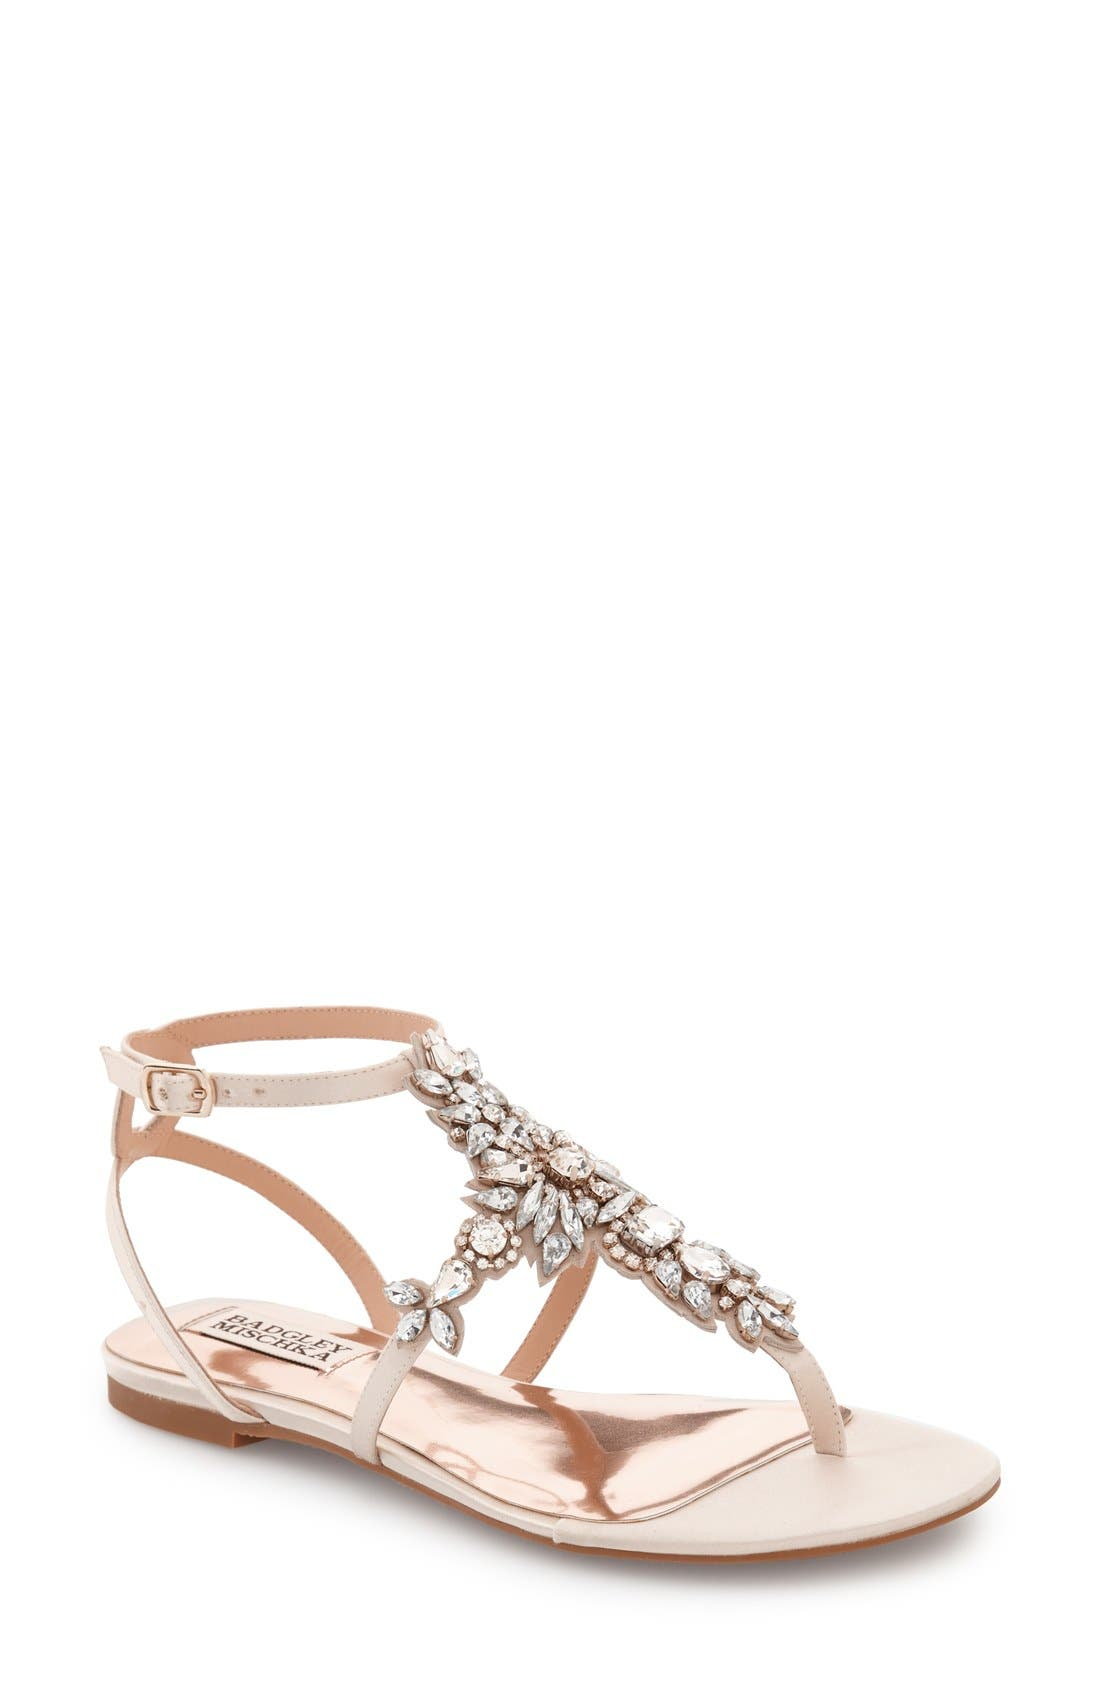 Badgley Mischka Cara Embellished Flat Evening Sandals Women's Shoes knoCcA